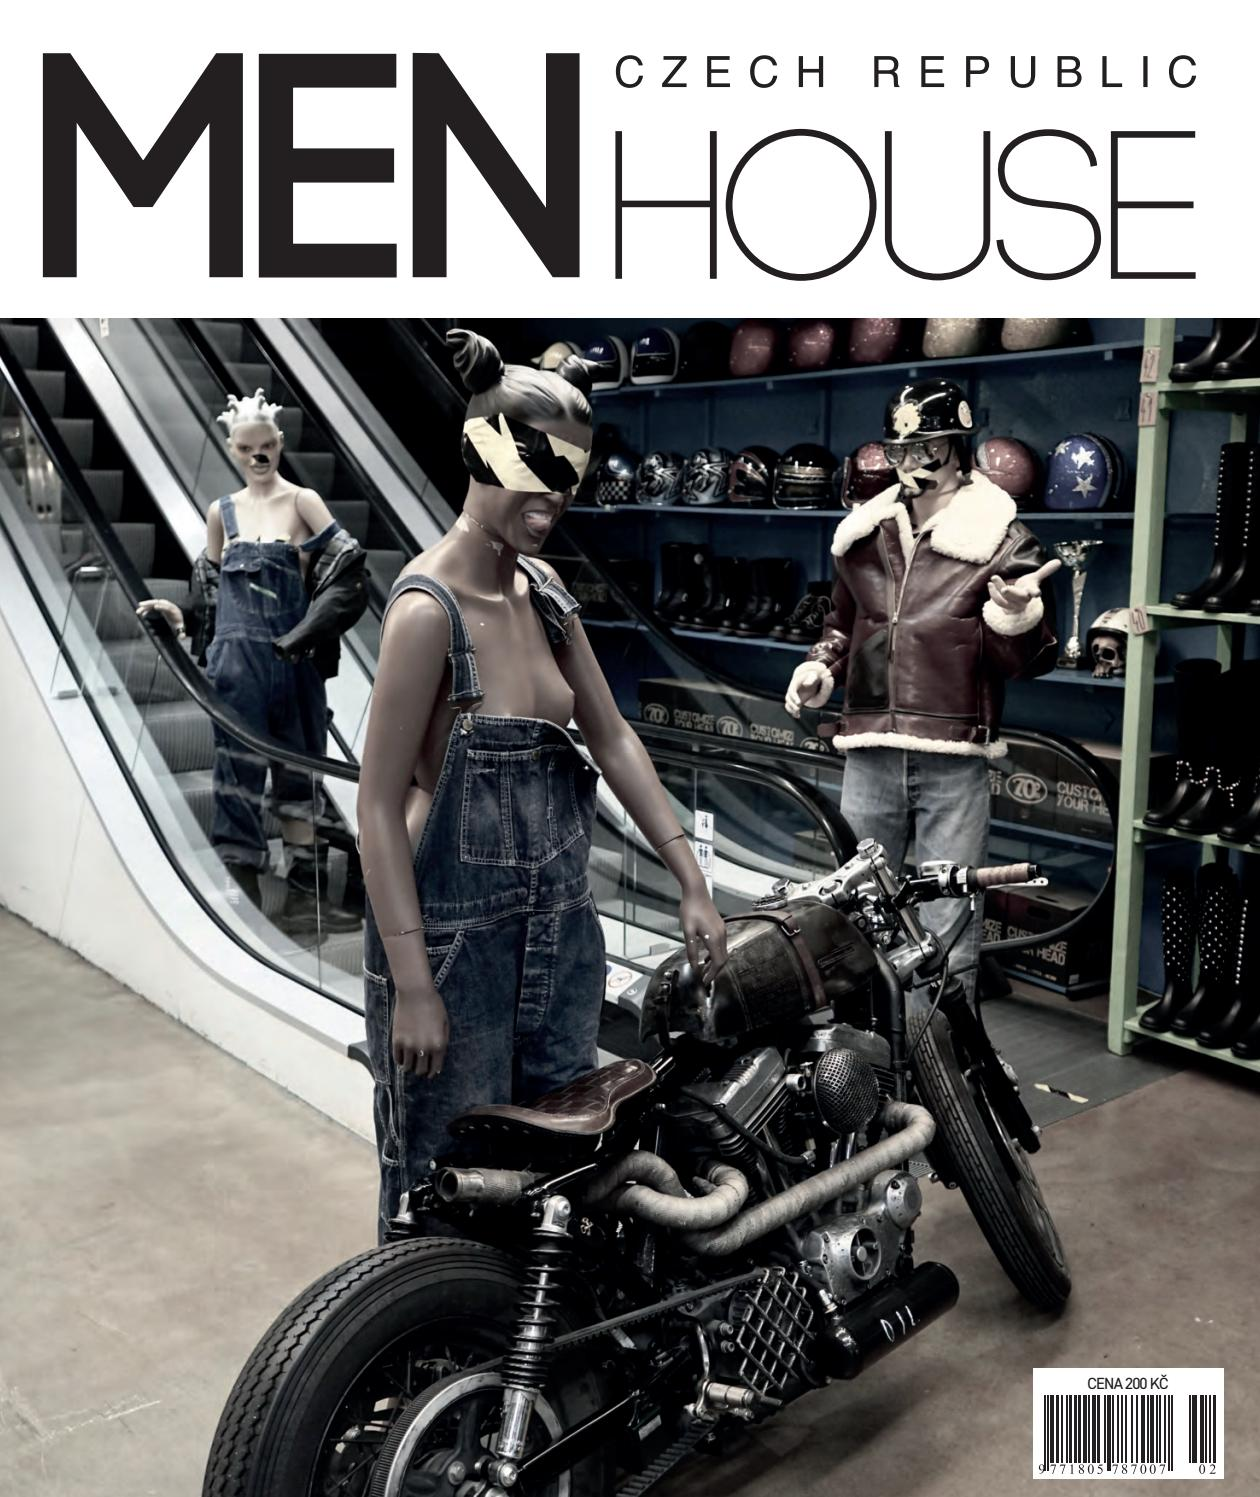 97fe576c9f92 Menhouse No. 21 by Menhouse - issuu